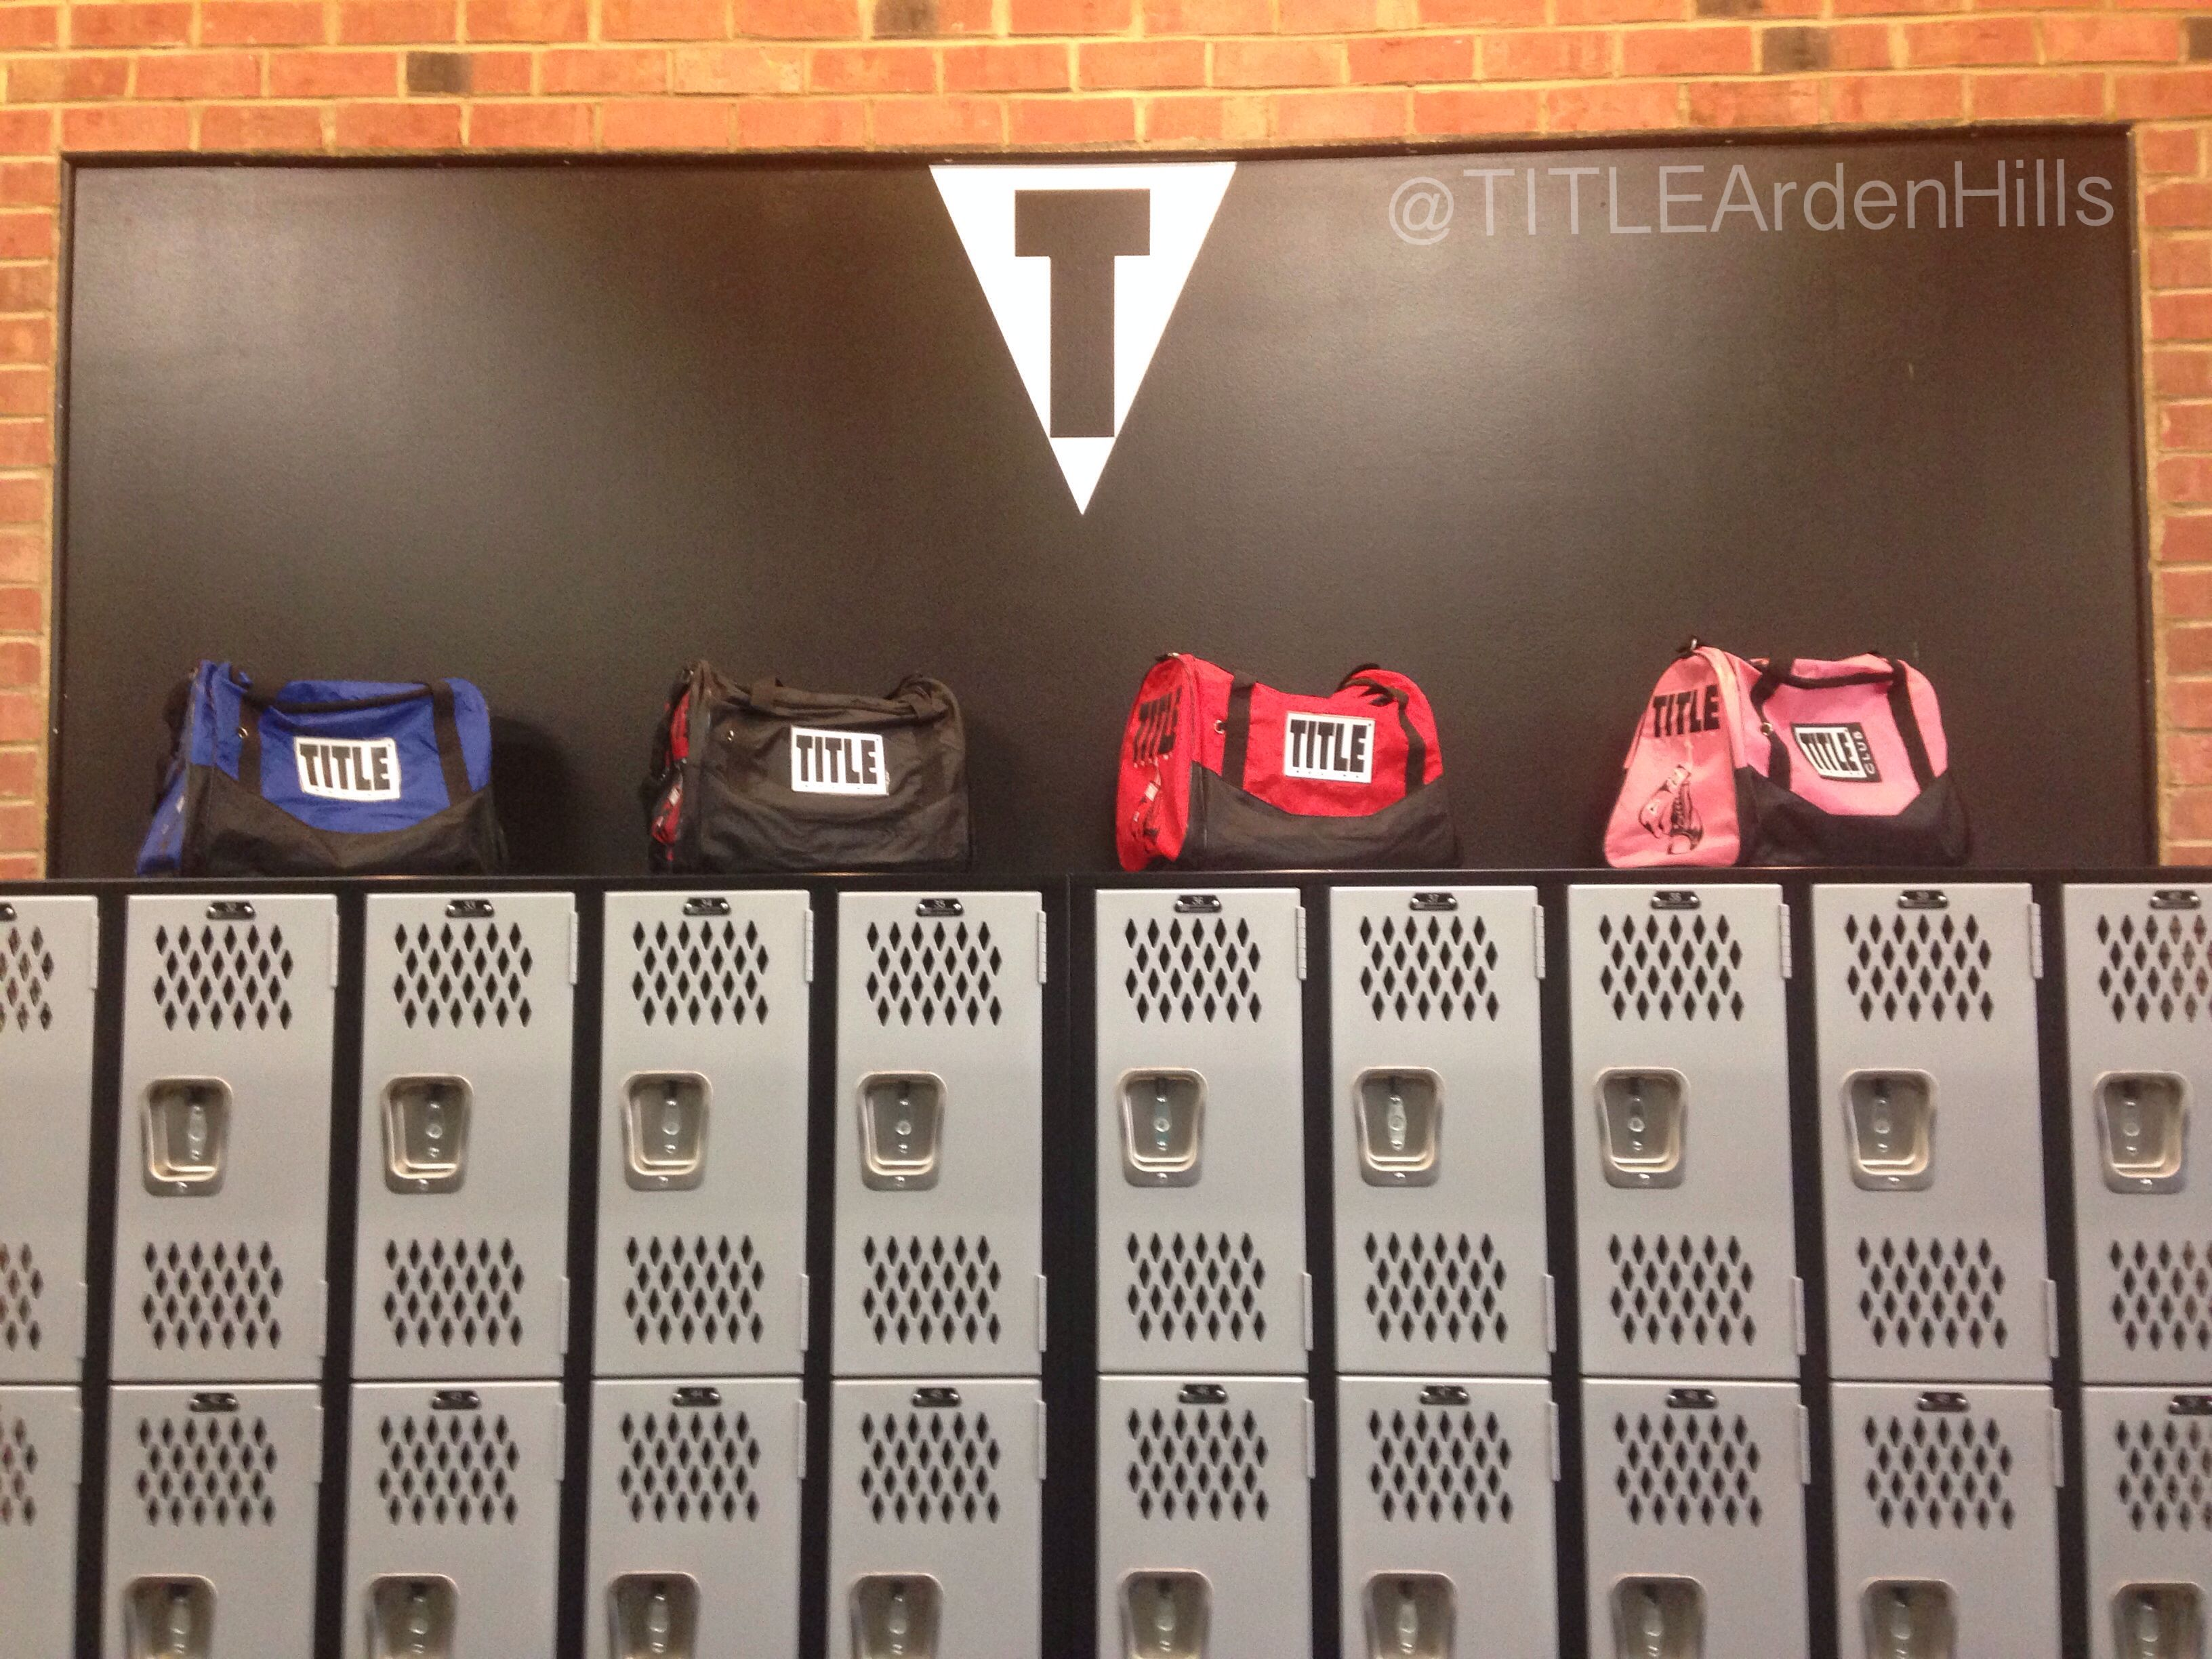 Traditional Title Boxing Gym Bags TITLE Club Arden Hills Ardenhills